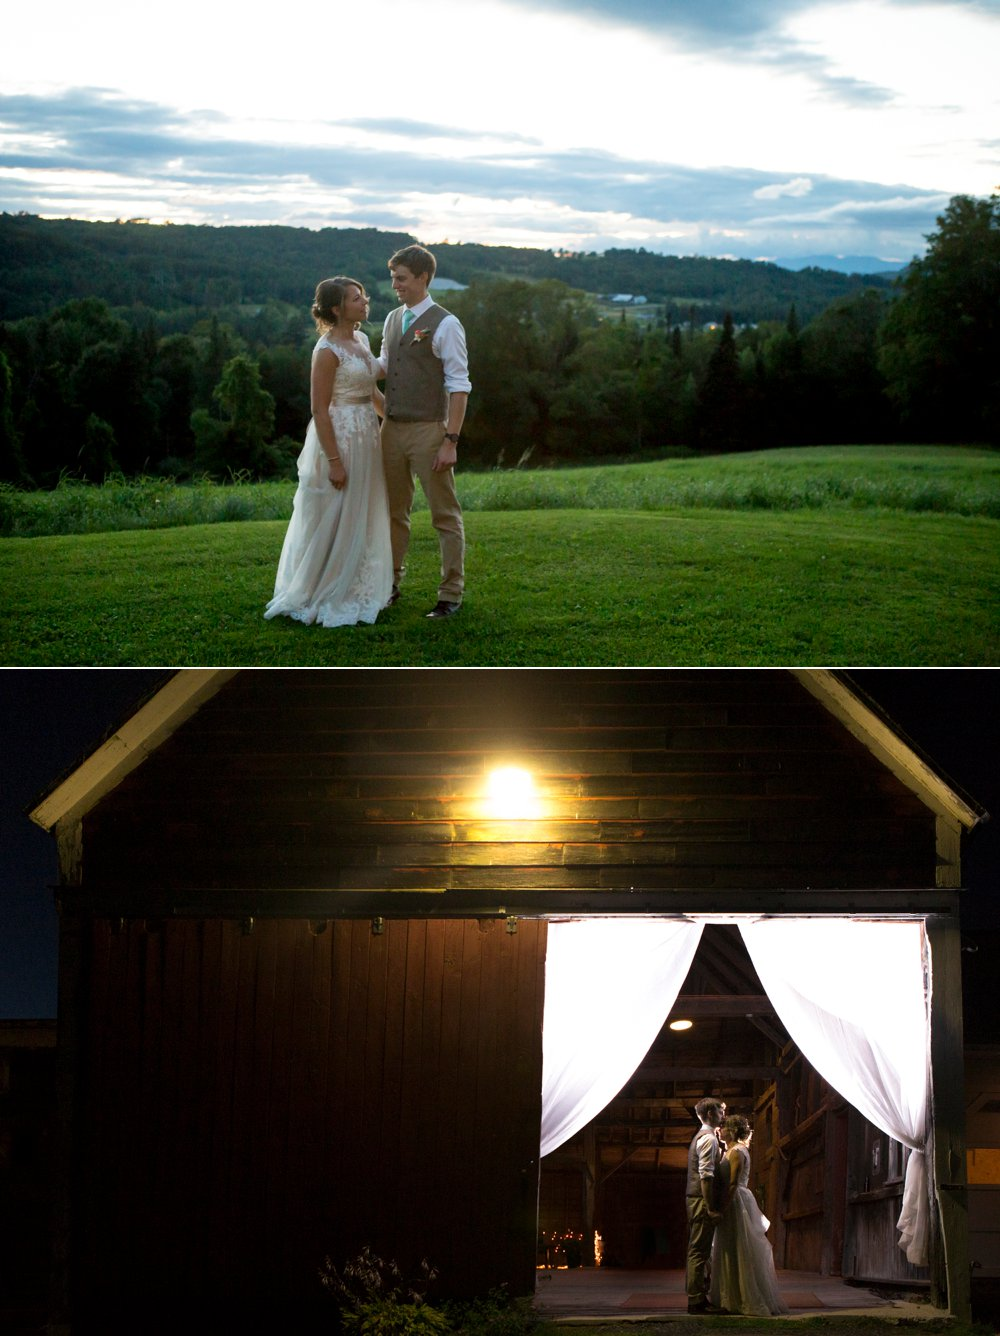 SomerbyJonesPhotography_VermontWedding_CyrBarn_CryBarnWedding_0056.jpg